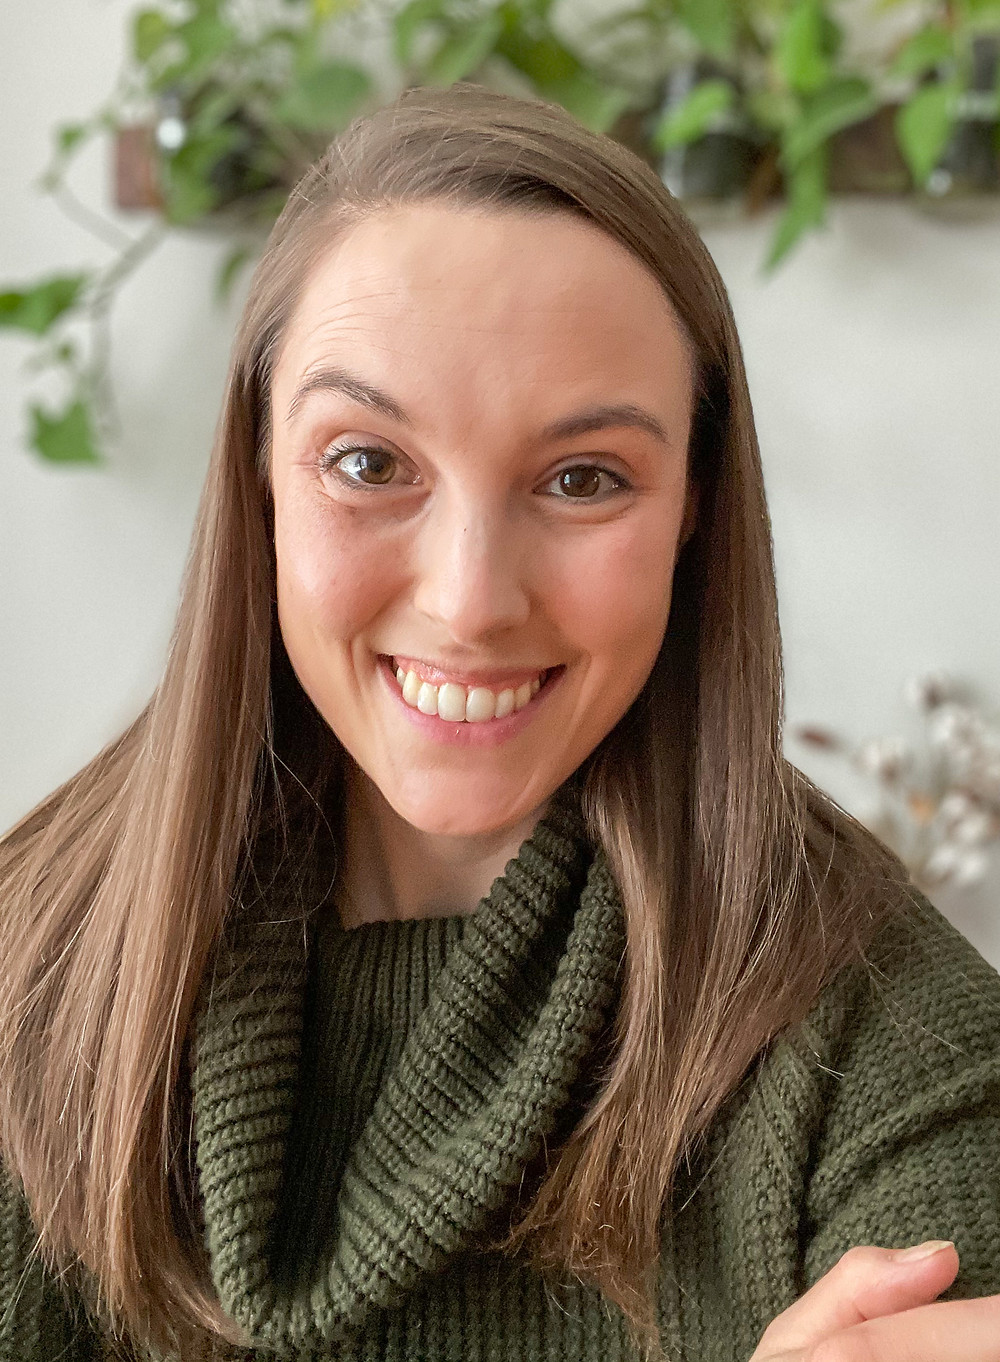 woman with brown hair and green sweater smiling